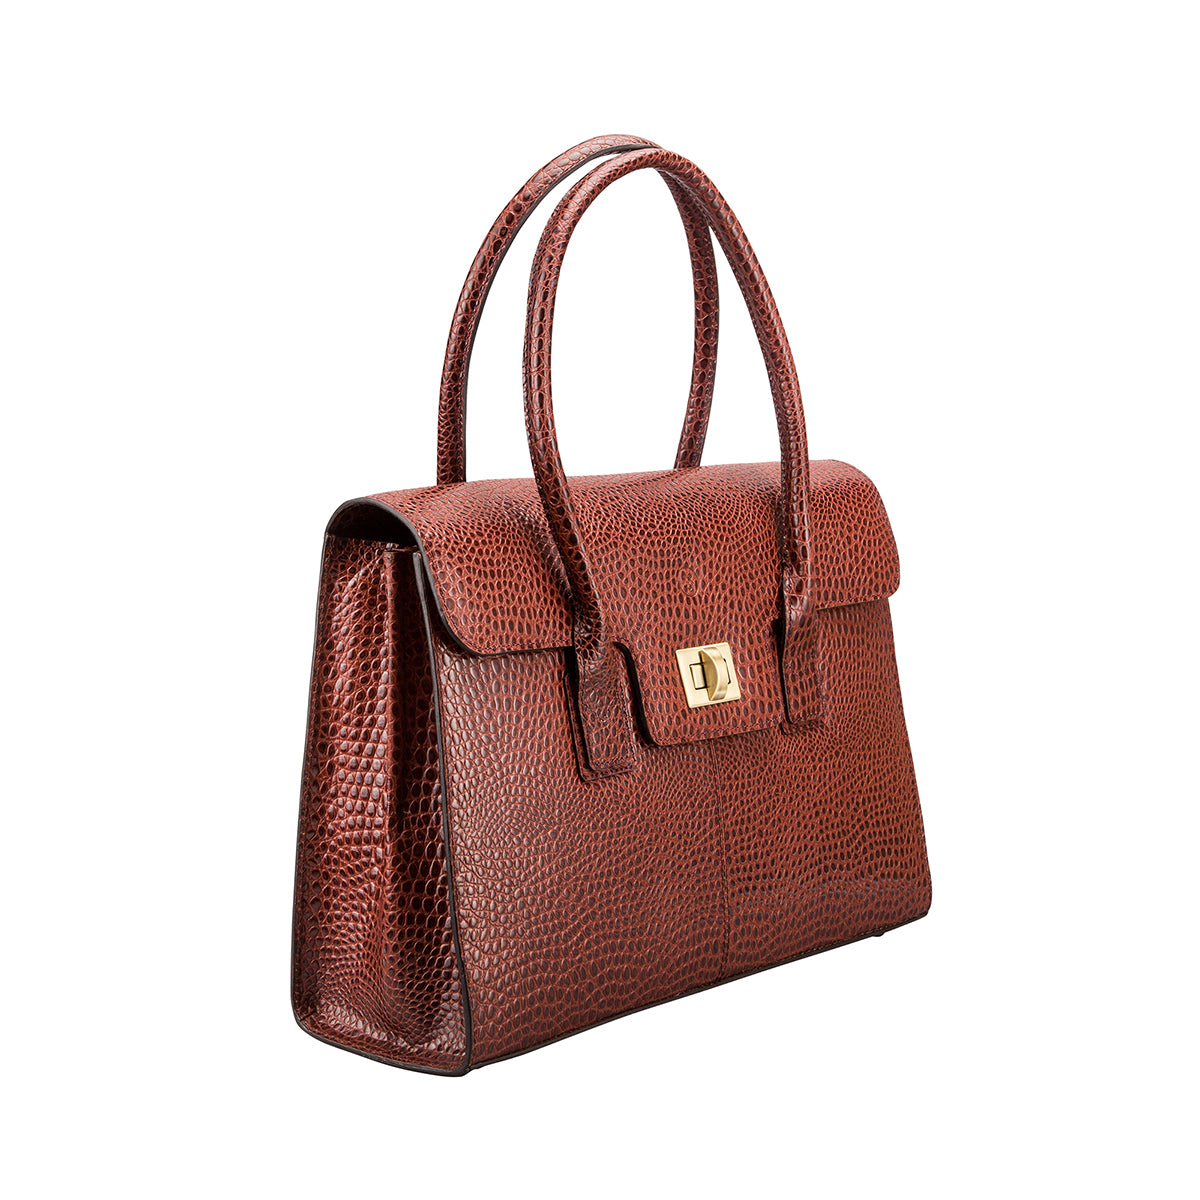 Image 2 of the 'Fabia' Chestnut Croco Veg-Tanned Leather Workbag